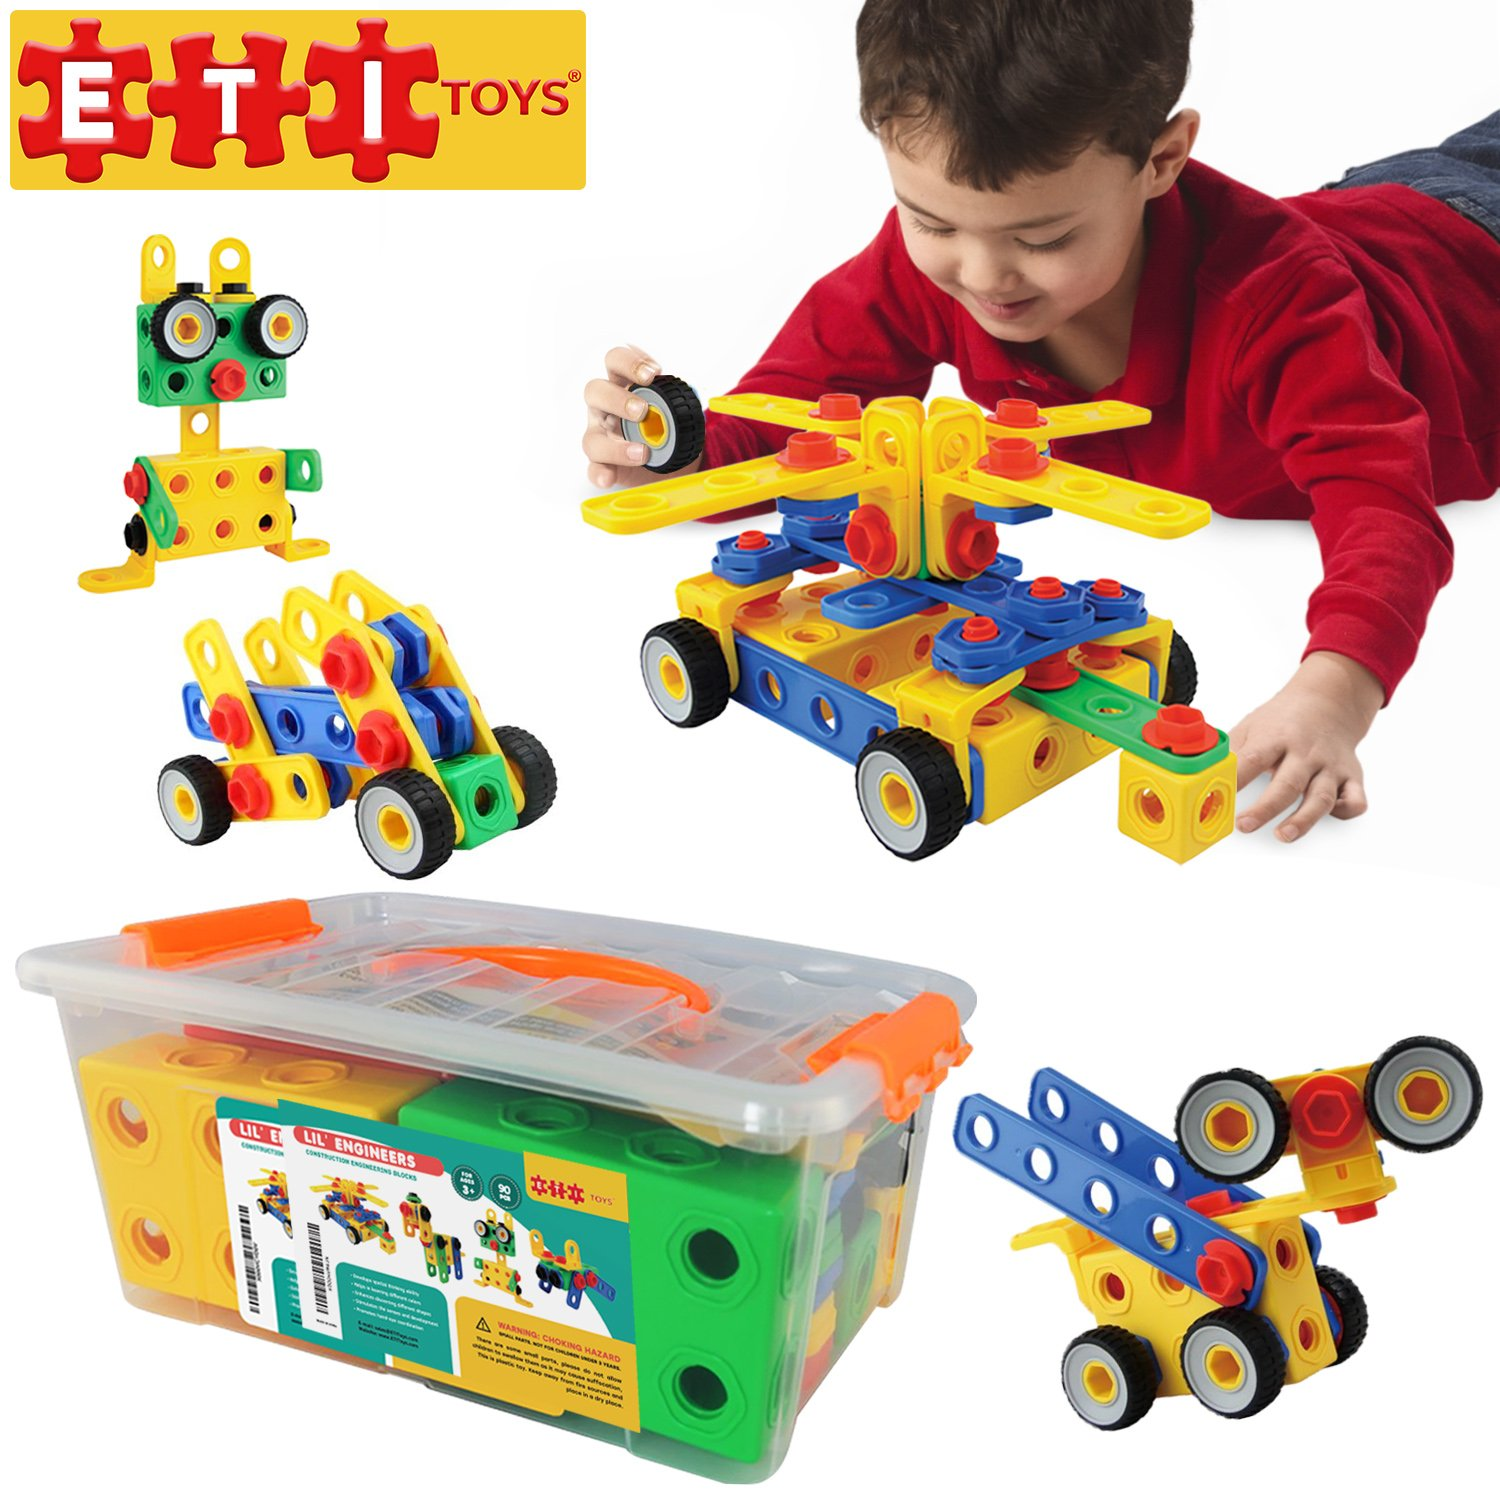 Cool Building Toys For Boys : Cool toys for year old boys what to buy a